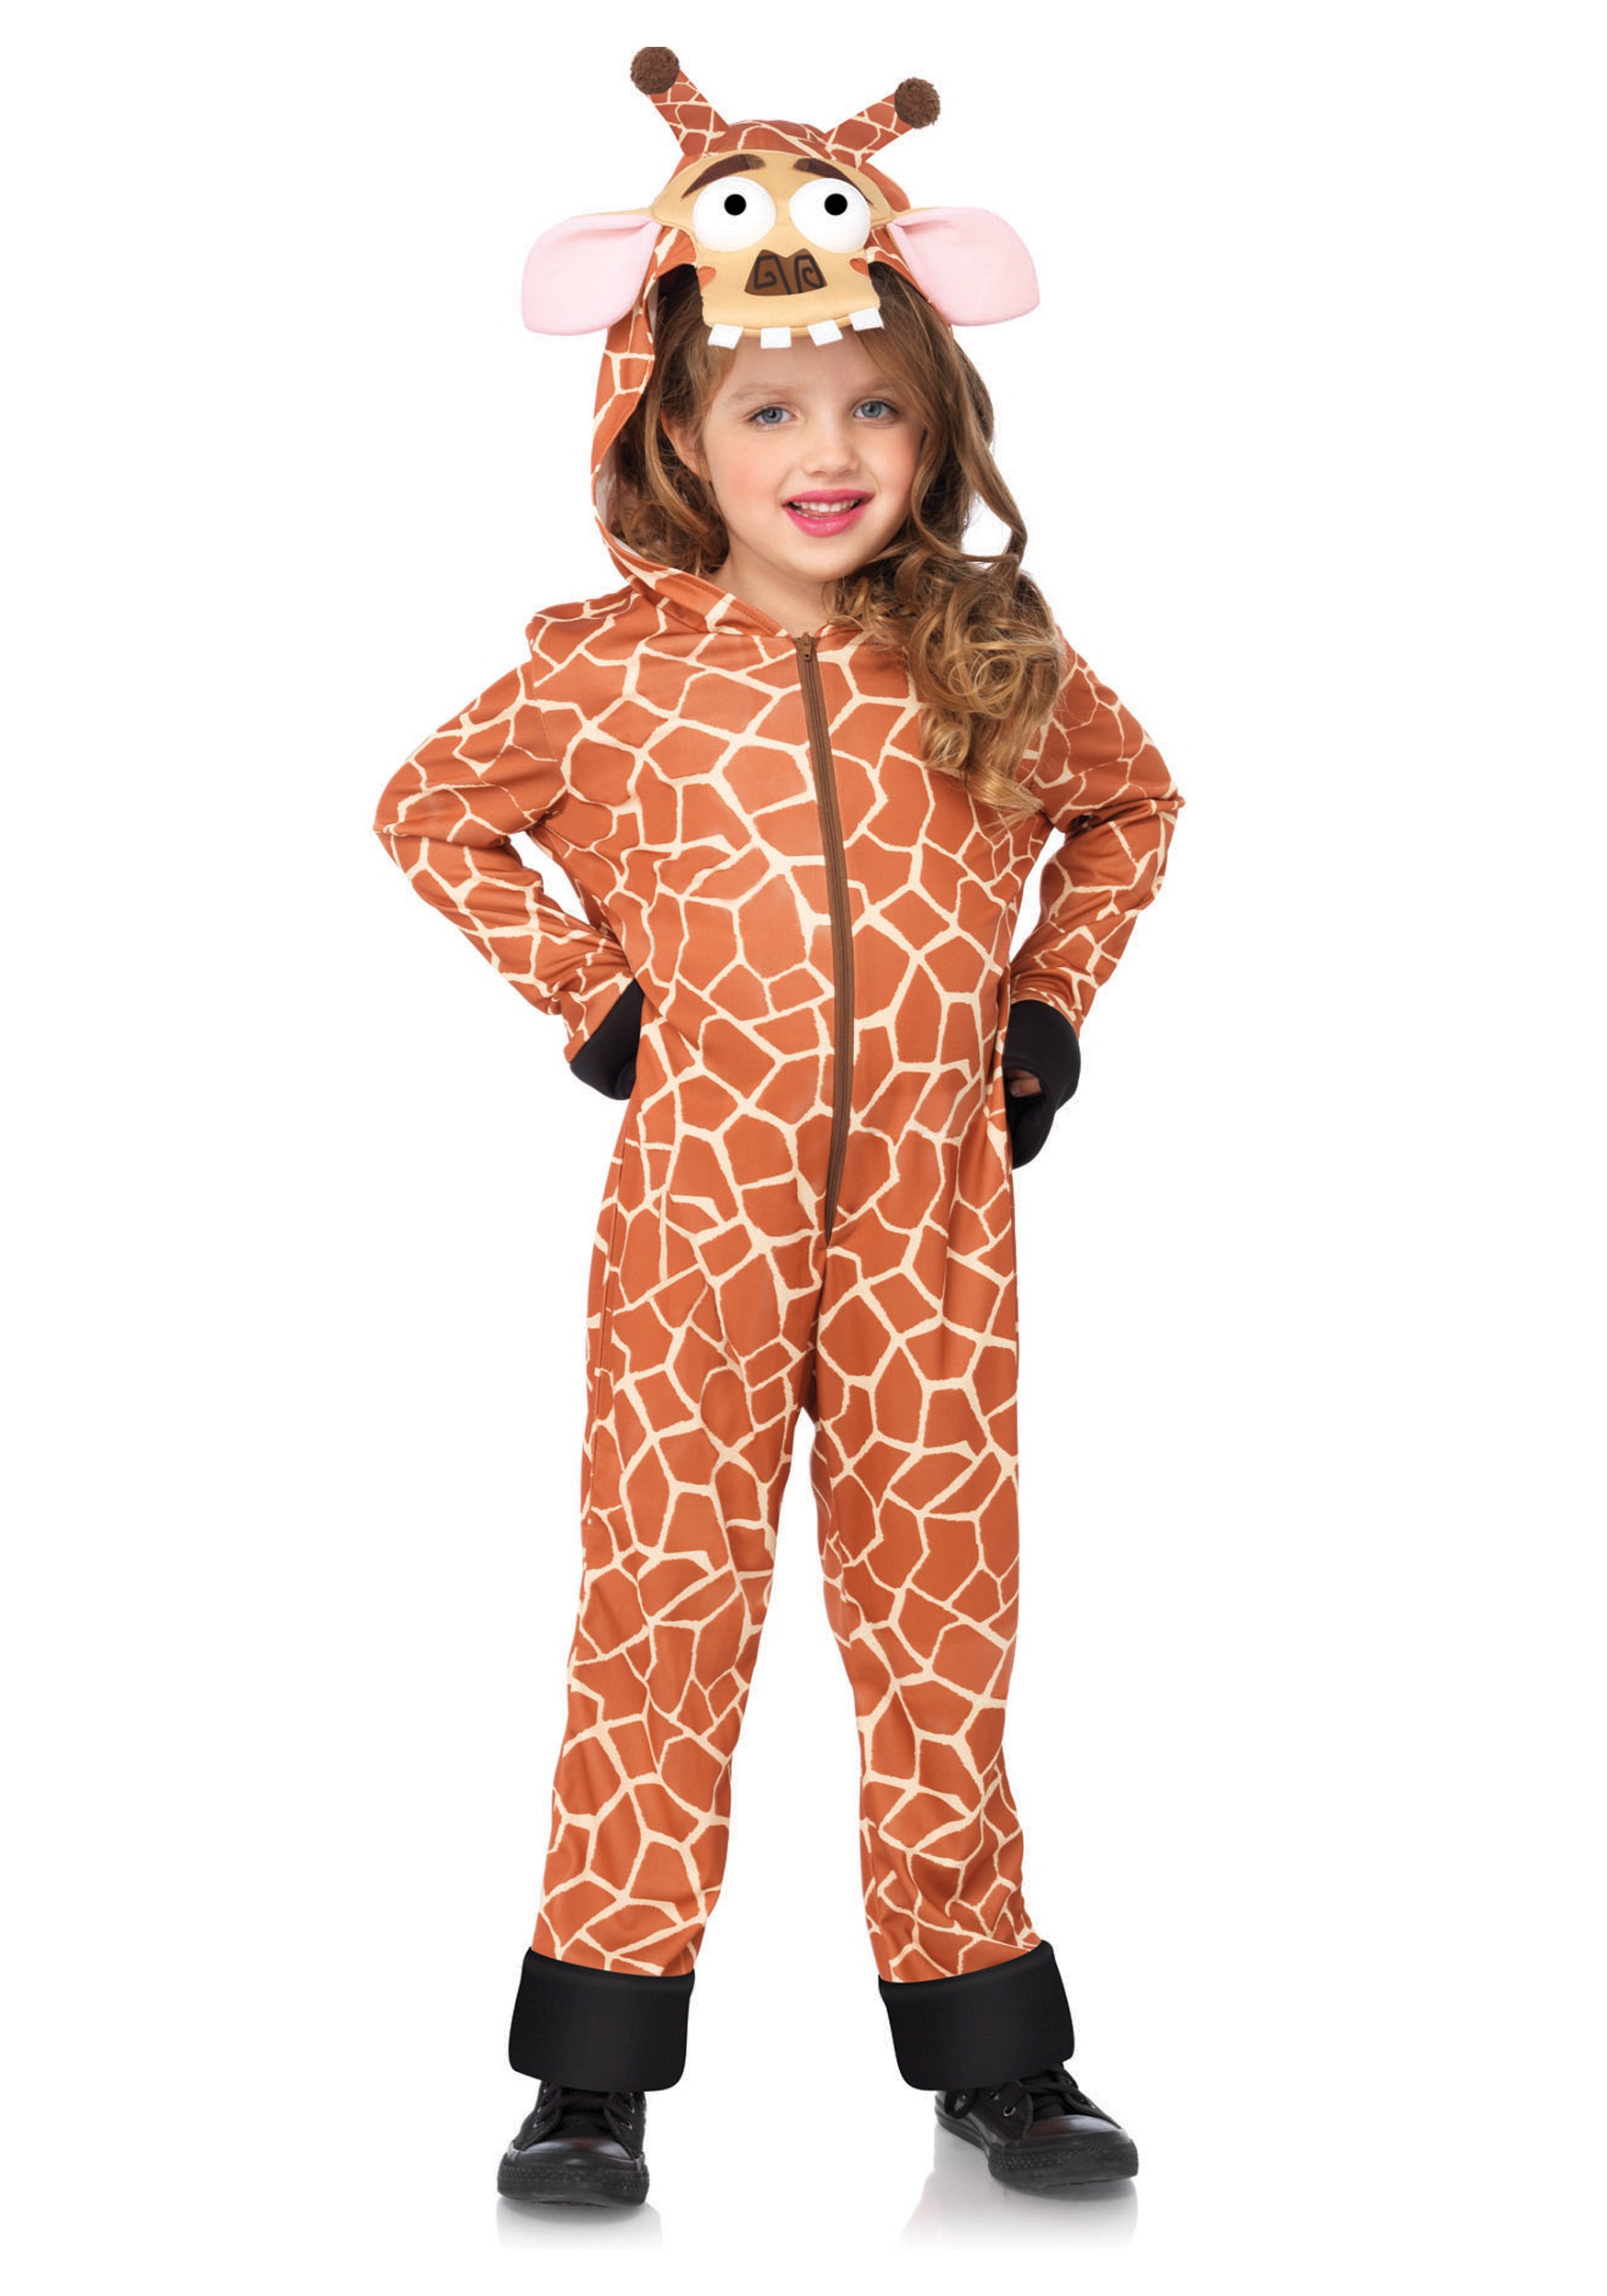 Melman the Giraffe Child Costume  sc 1 st  Halloween Costumes & Melman the Giraffe Child Costume - Halloween Costumes